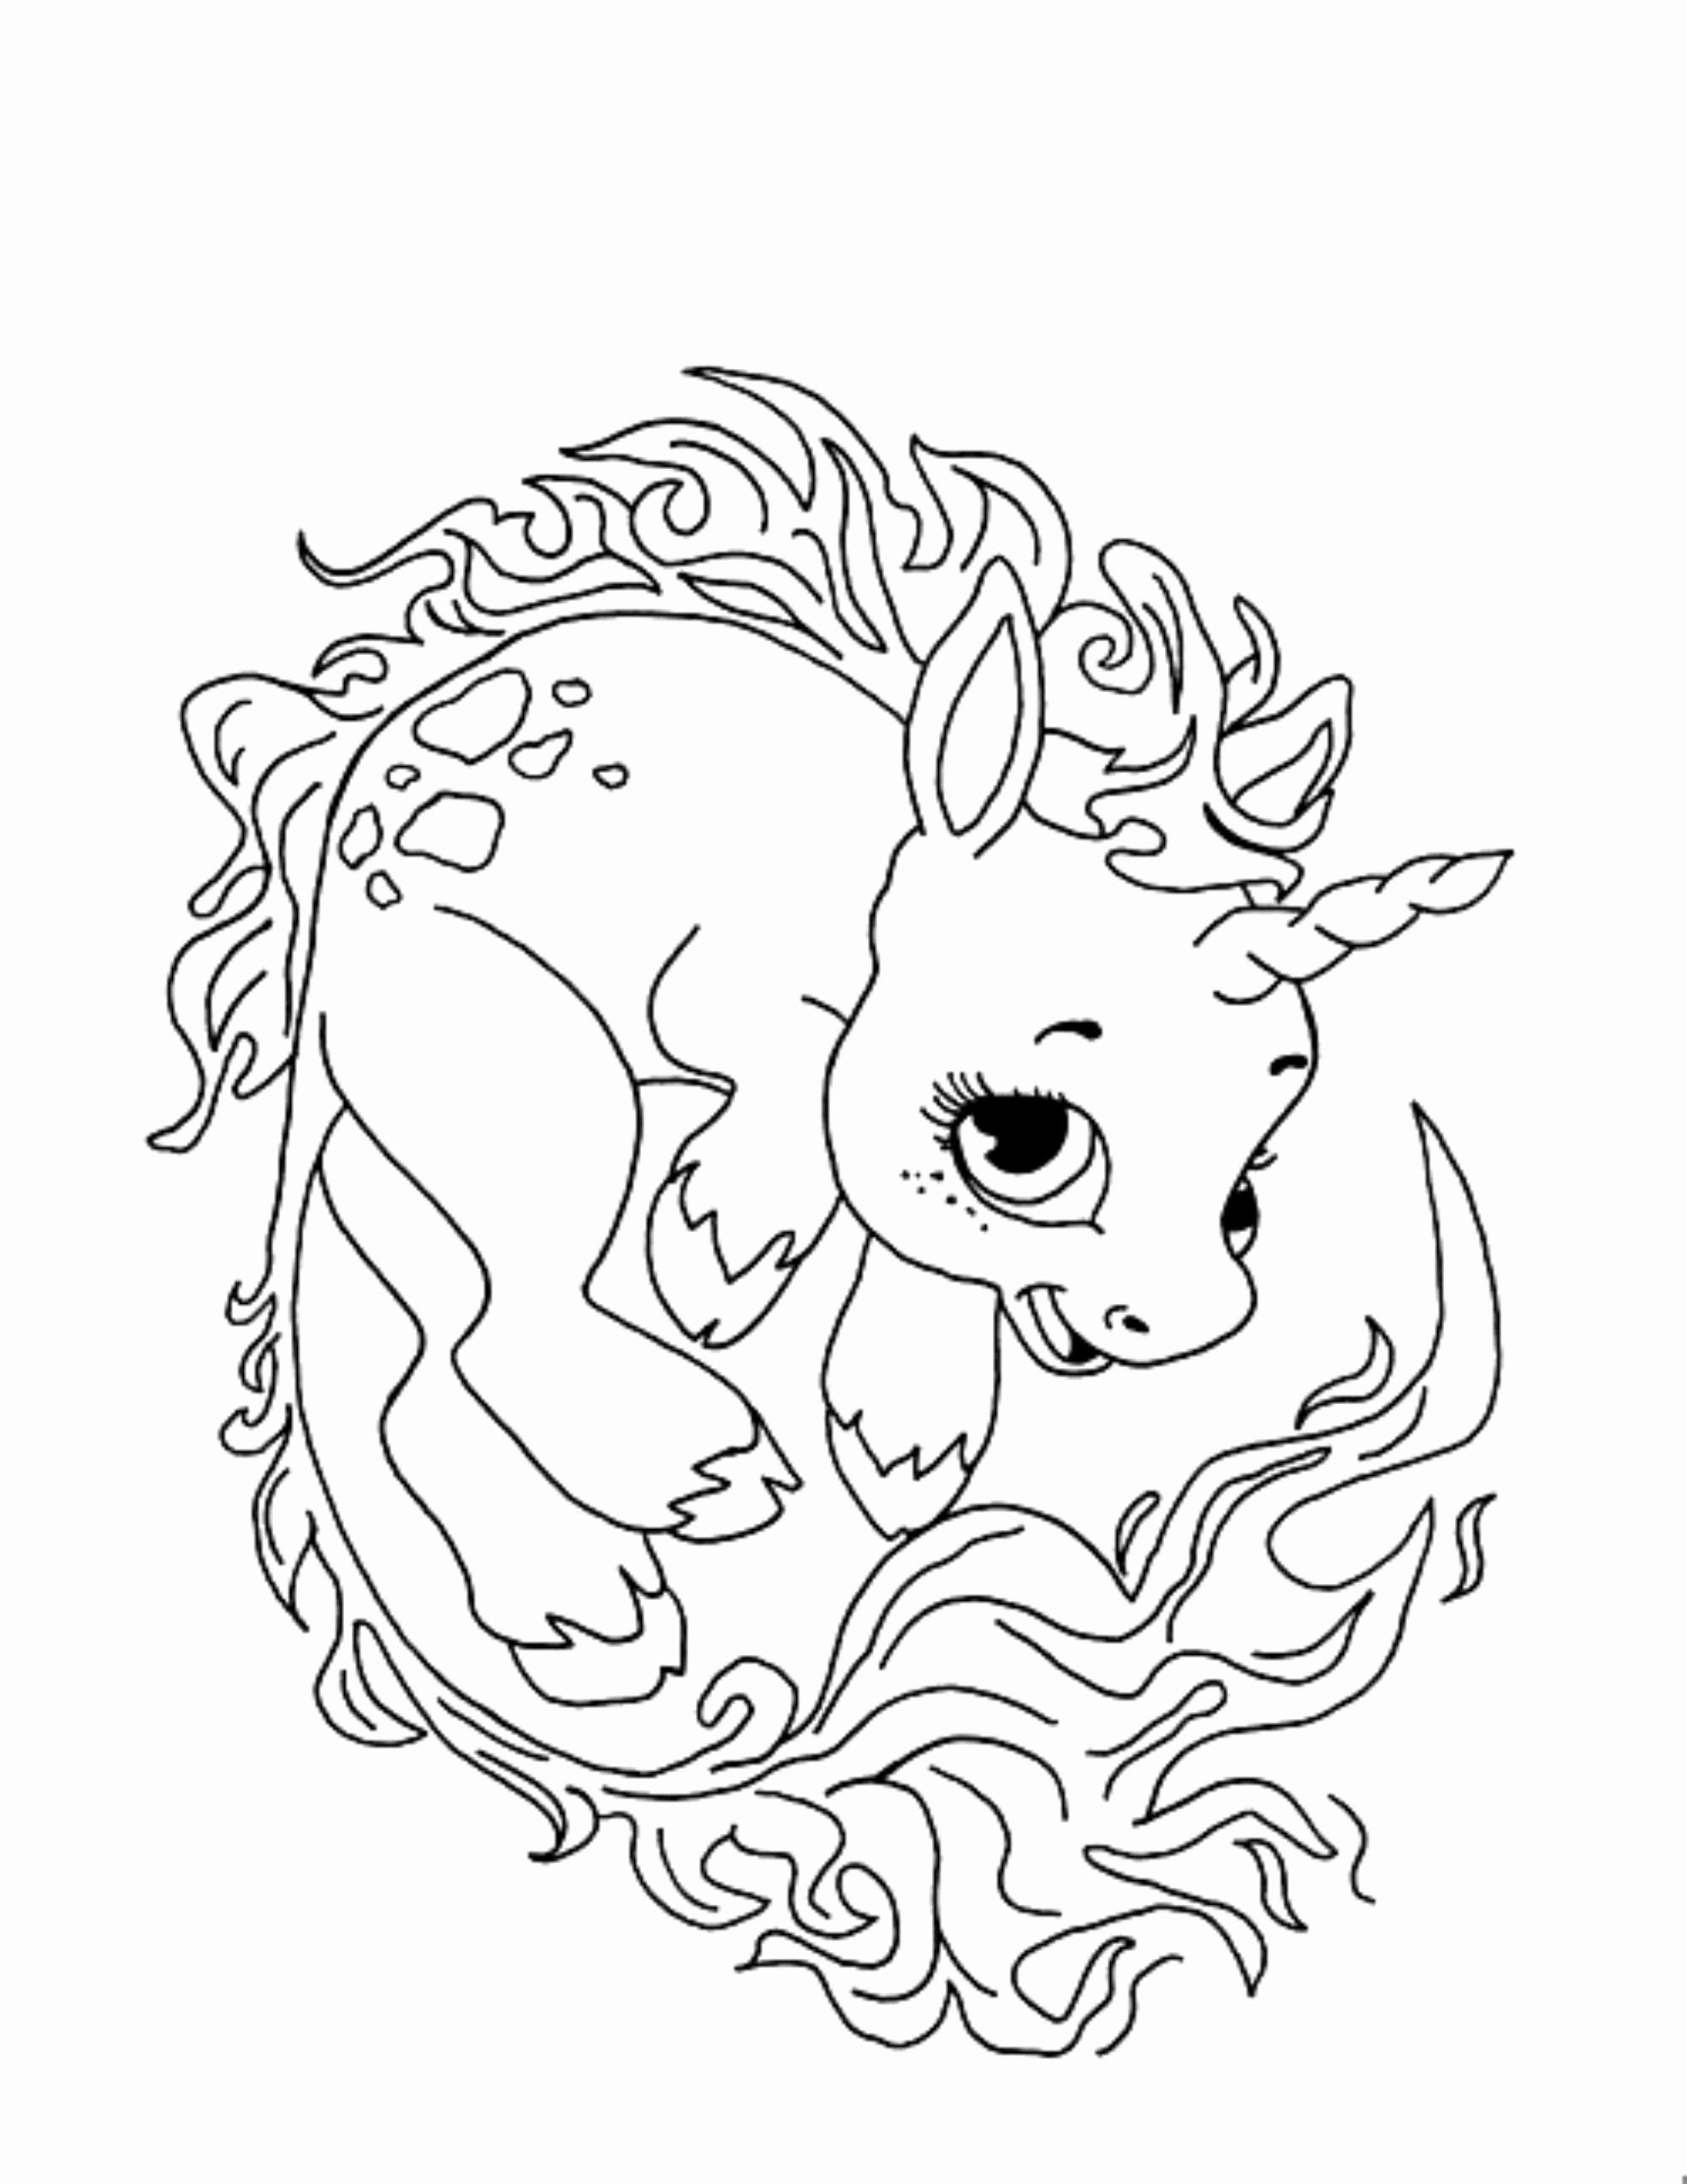 Cute Unicorn Coloring Pages Printable New Coloring Pages Cute Unicorns At Getcolorings Unicorn Coloring Pages Dragon Coloring Page Animal Coloring Pages